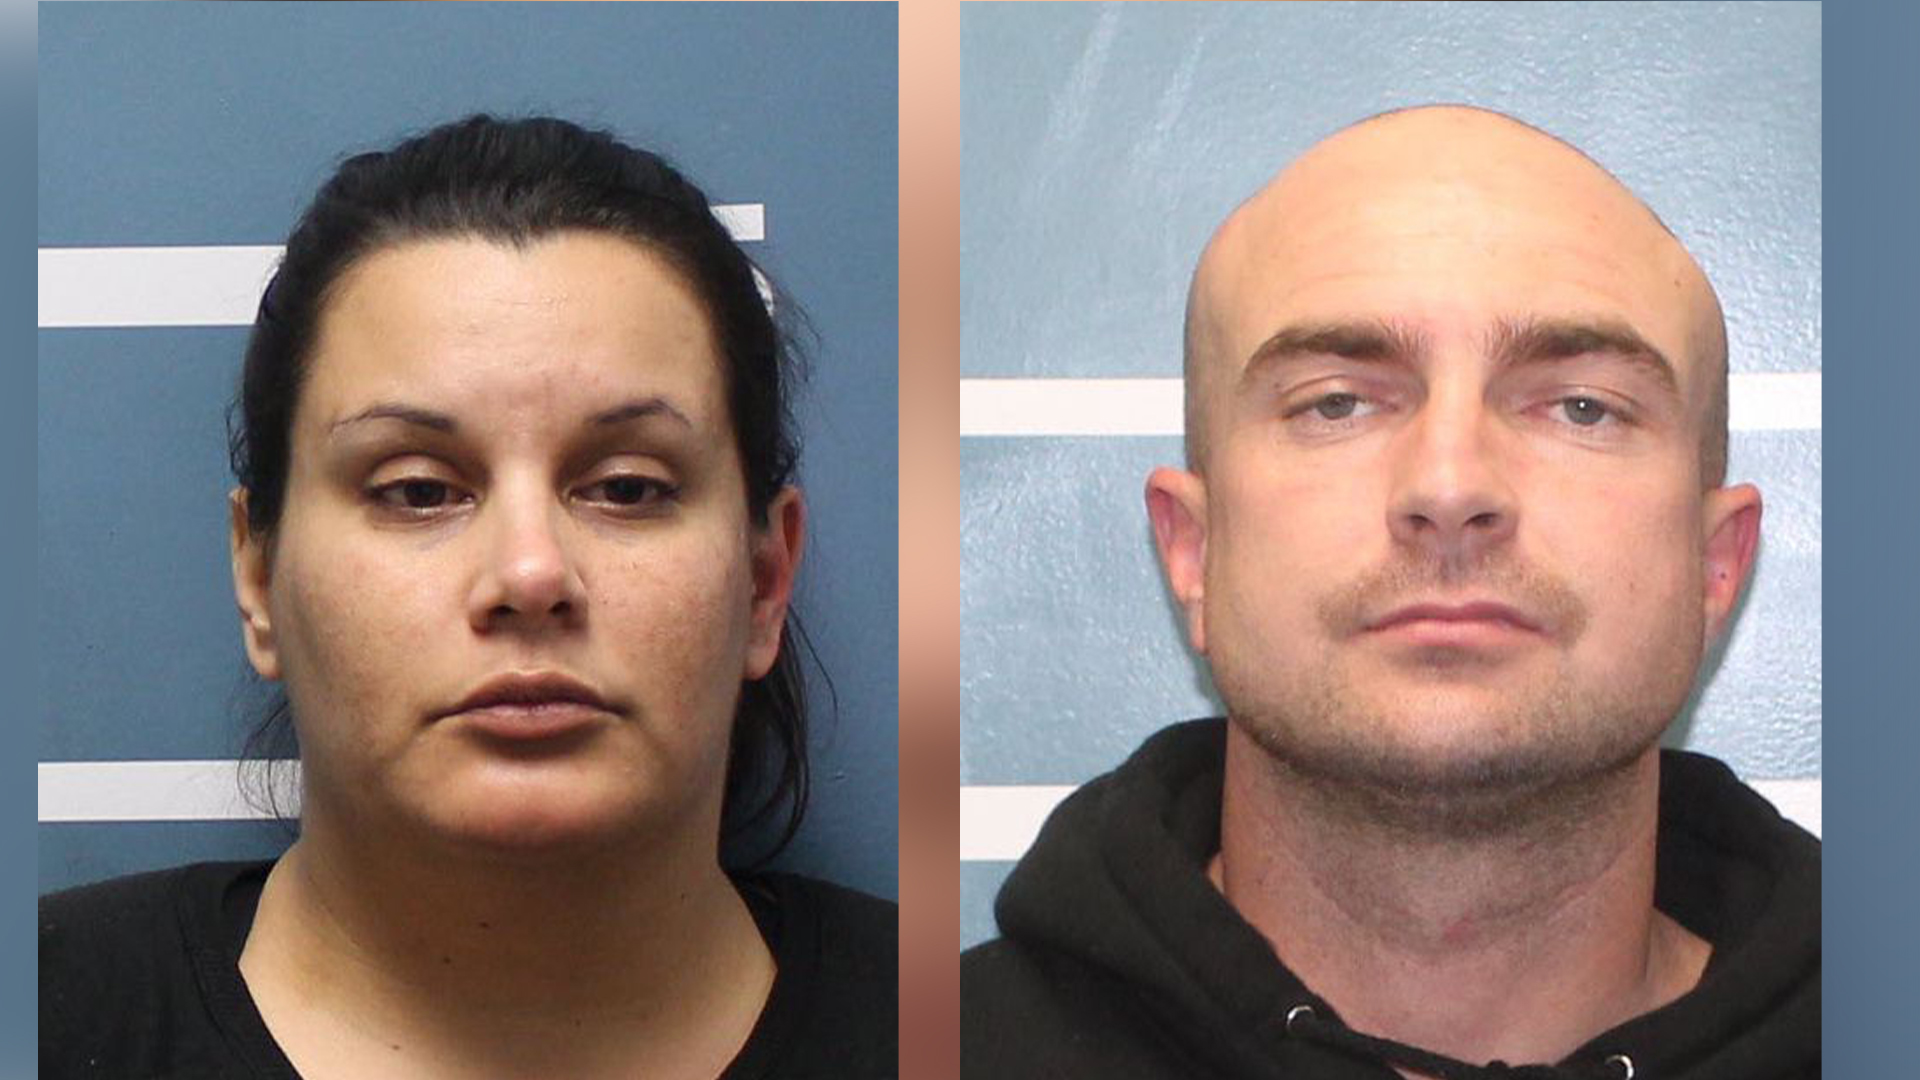 (Left to Right) Amanda Morris, 33, and Gregory Moore, 33 (Courtesy of Visalia Police)